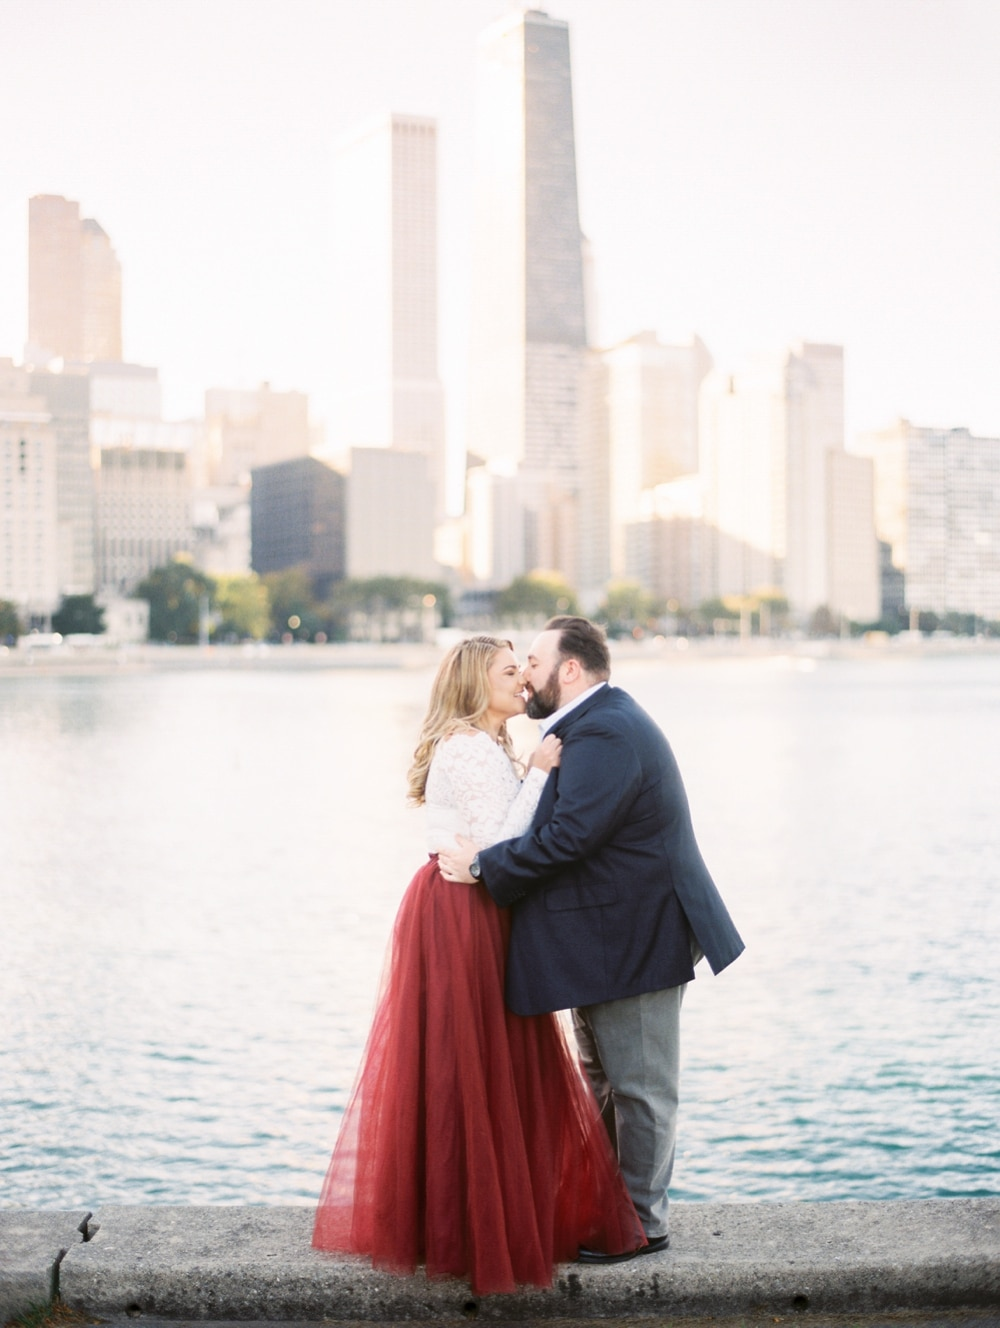 kristin-la-voie-photography-chicago-wedding-photographer-olive-park-58